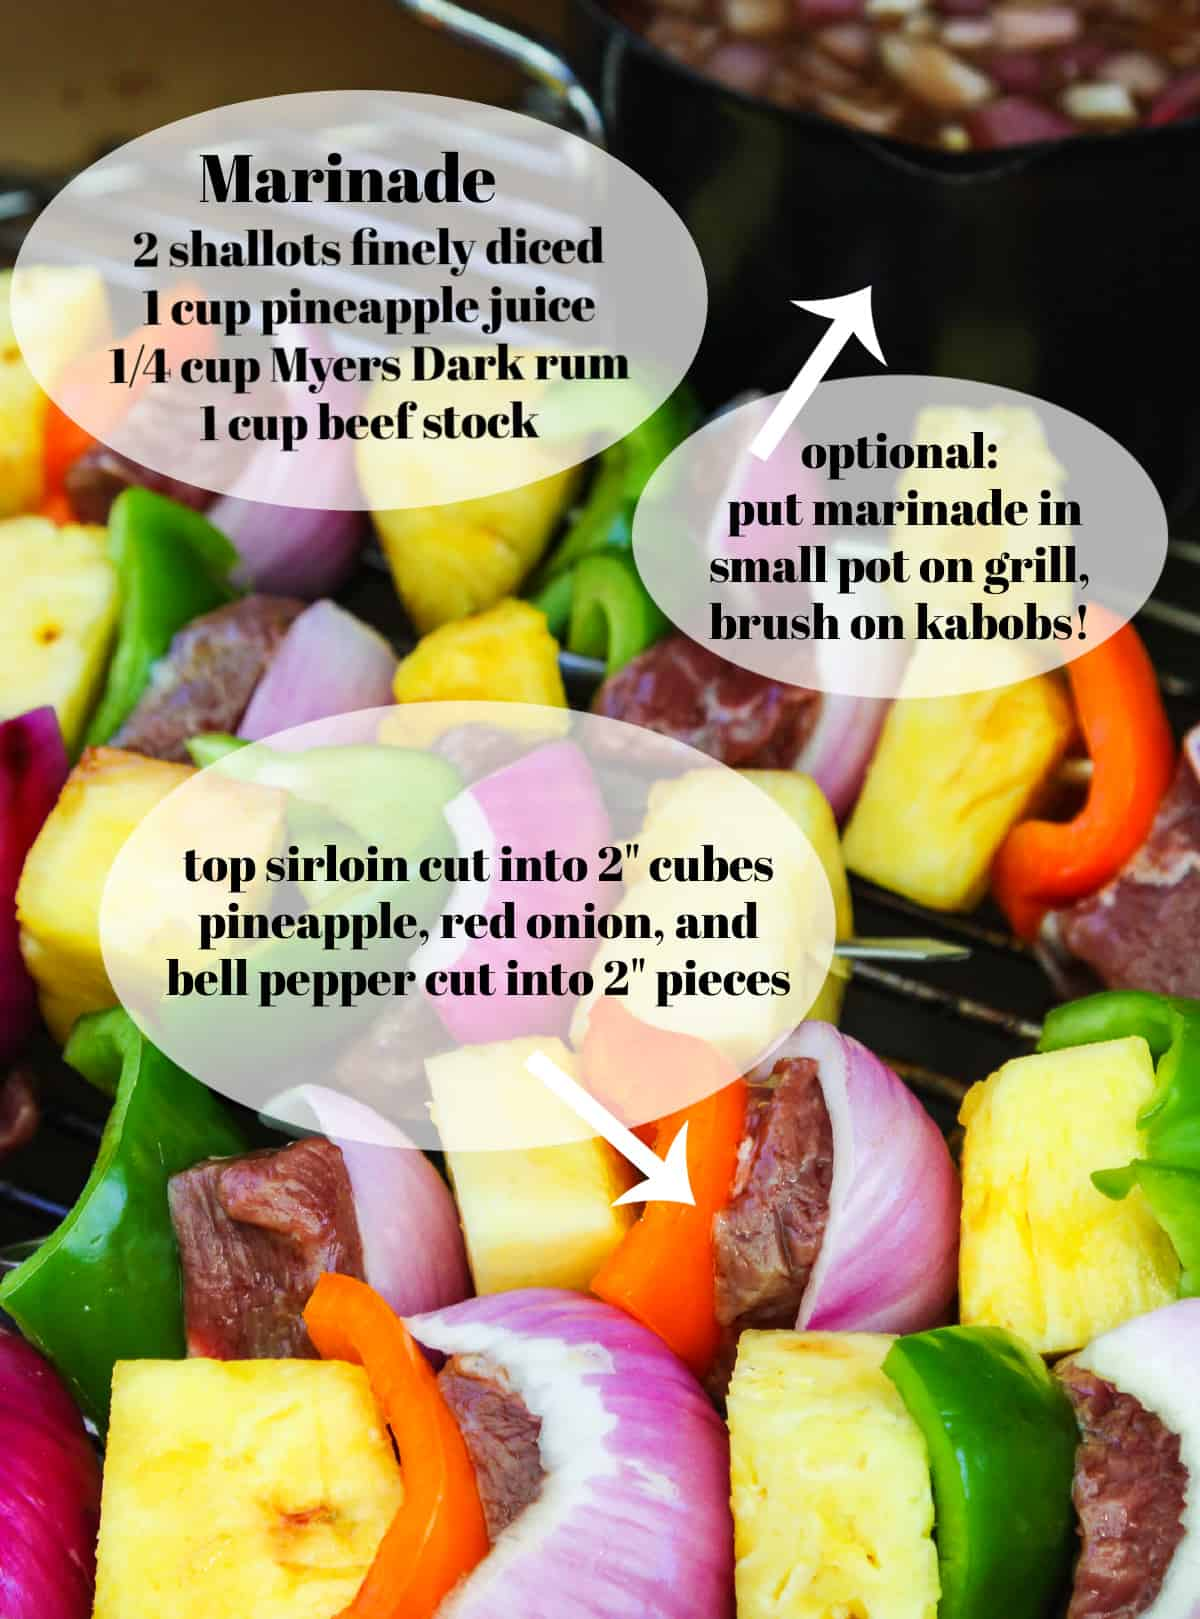 A graphic with shish kabobs on a grill with colorful vegetables.